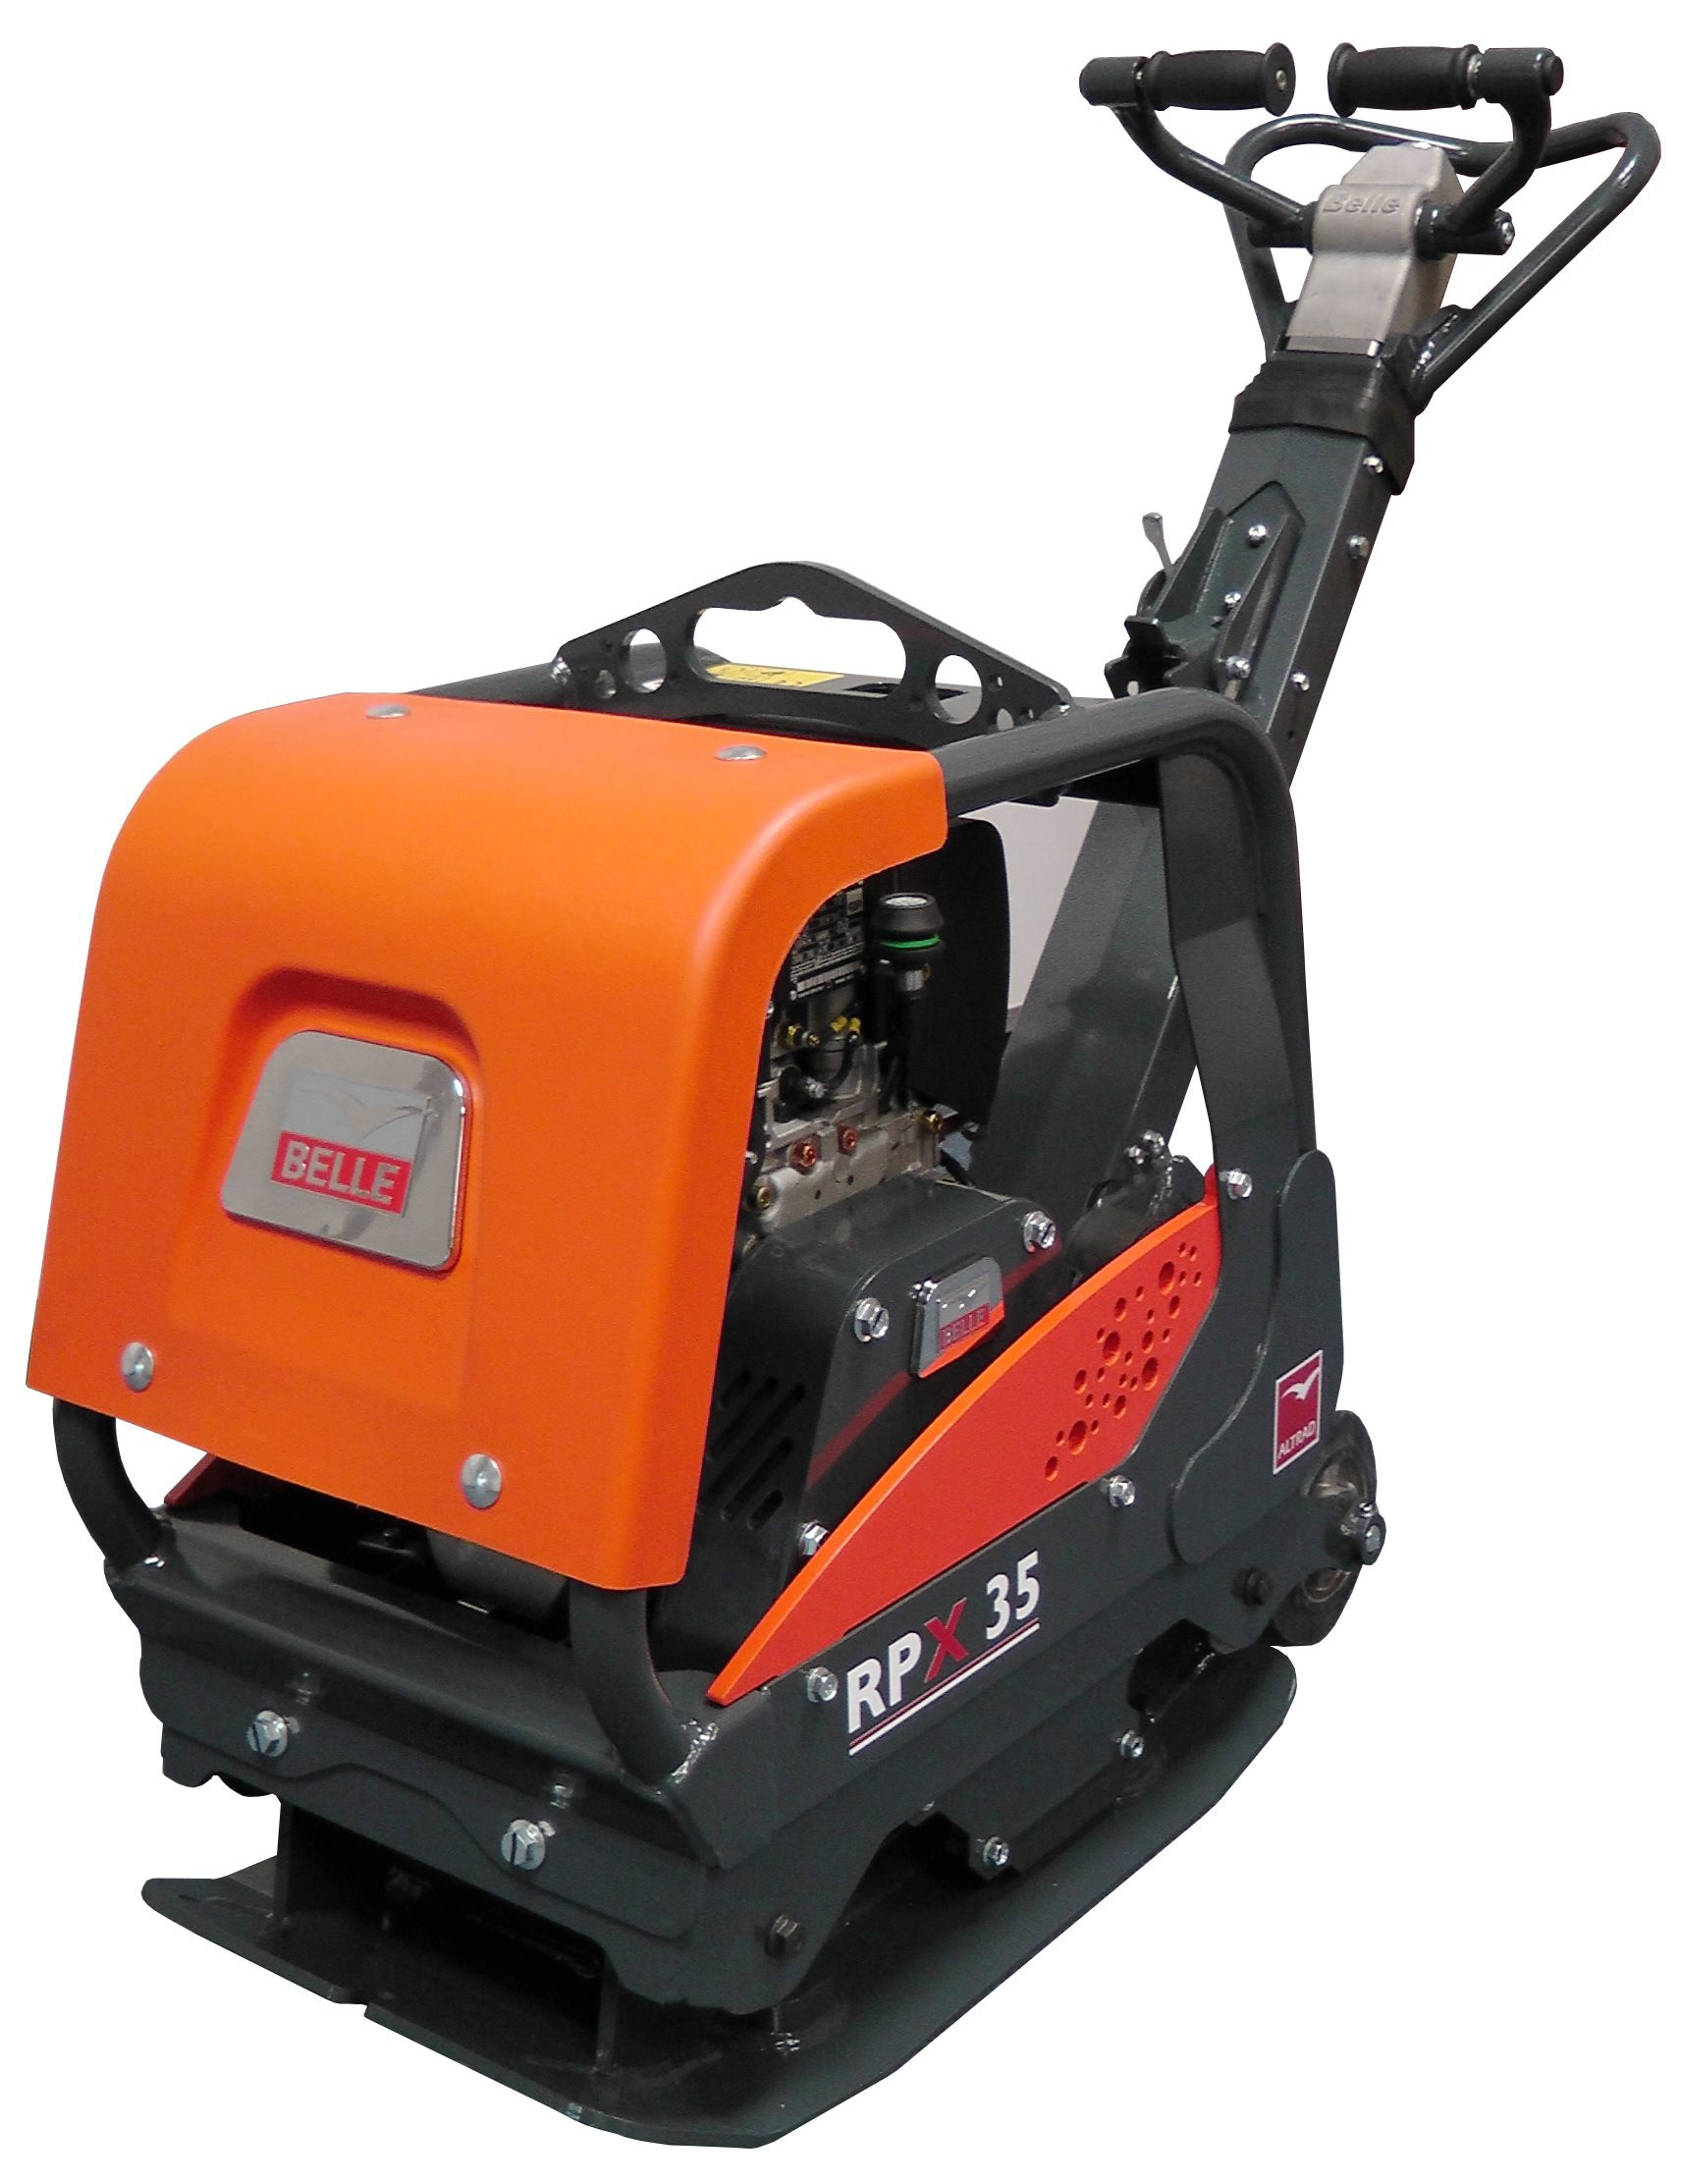 Belle RPX 35 reversible plate compactor with orange casing and metal Belle logo on the front